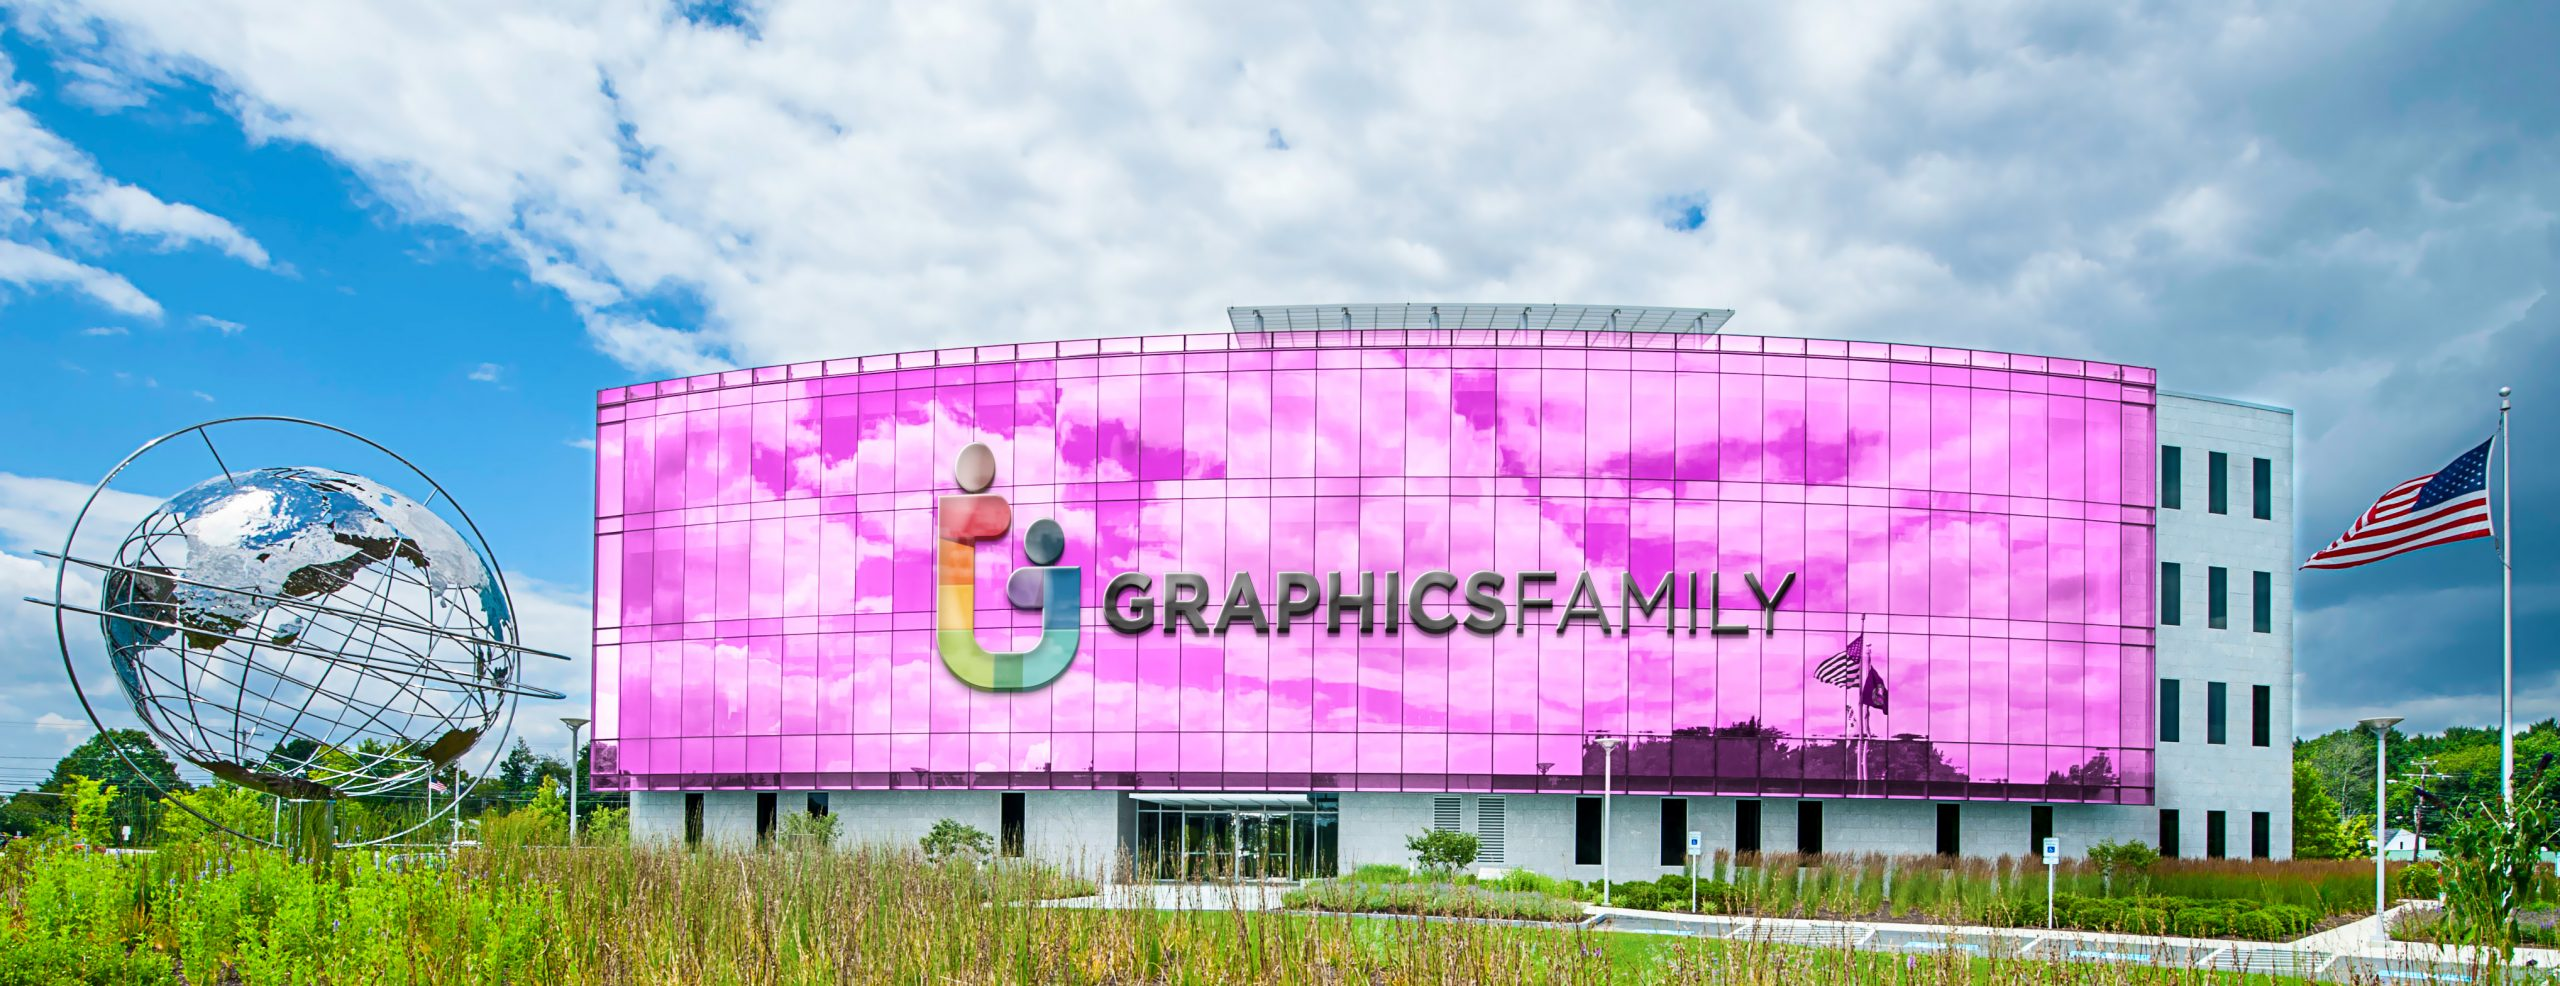 GraphicsFamily-Wide-Realistic-Building-Logo-Mockup